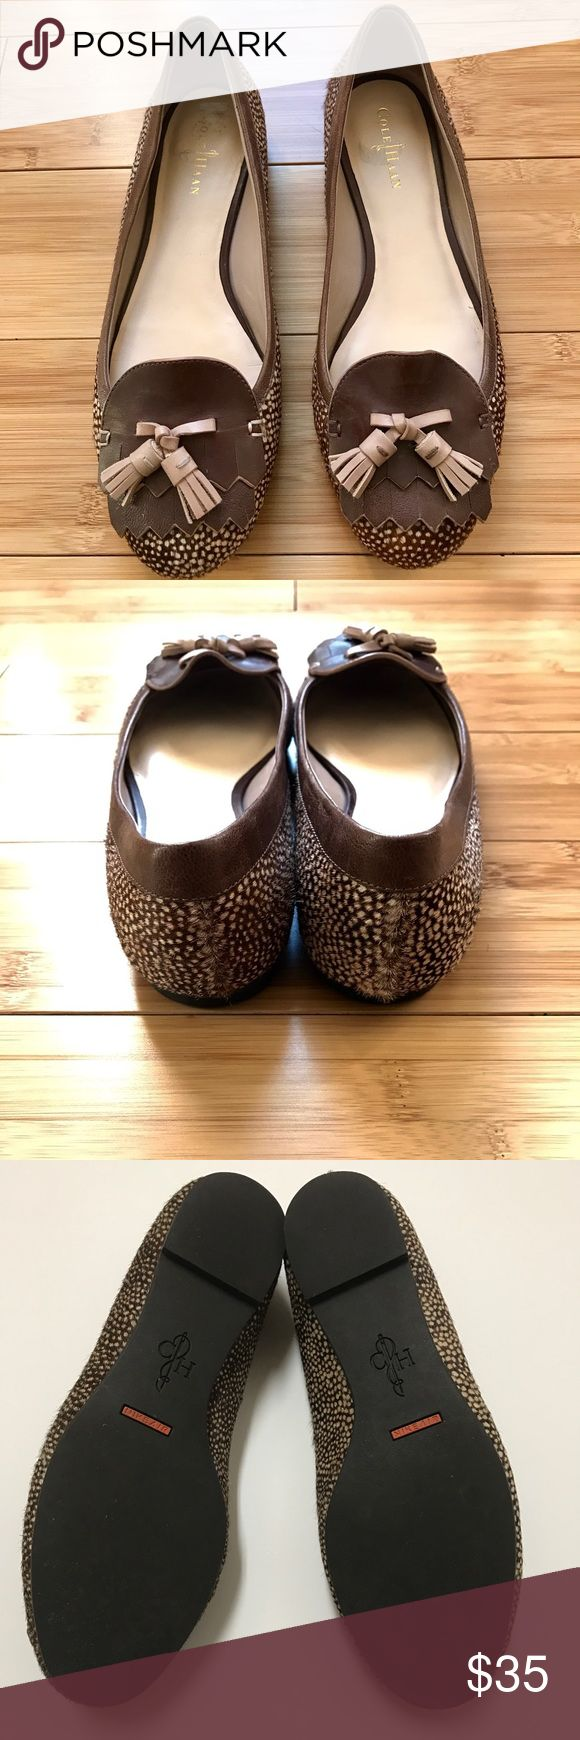 Cole Haan Leopard Nike Air Flats, Size 6 Excellent Condition. Nike Air Flats Cole Haan Shoes Flats & Loafers